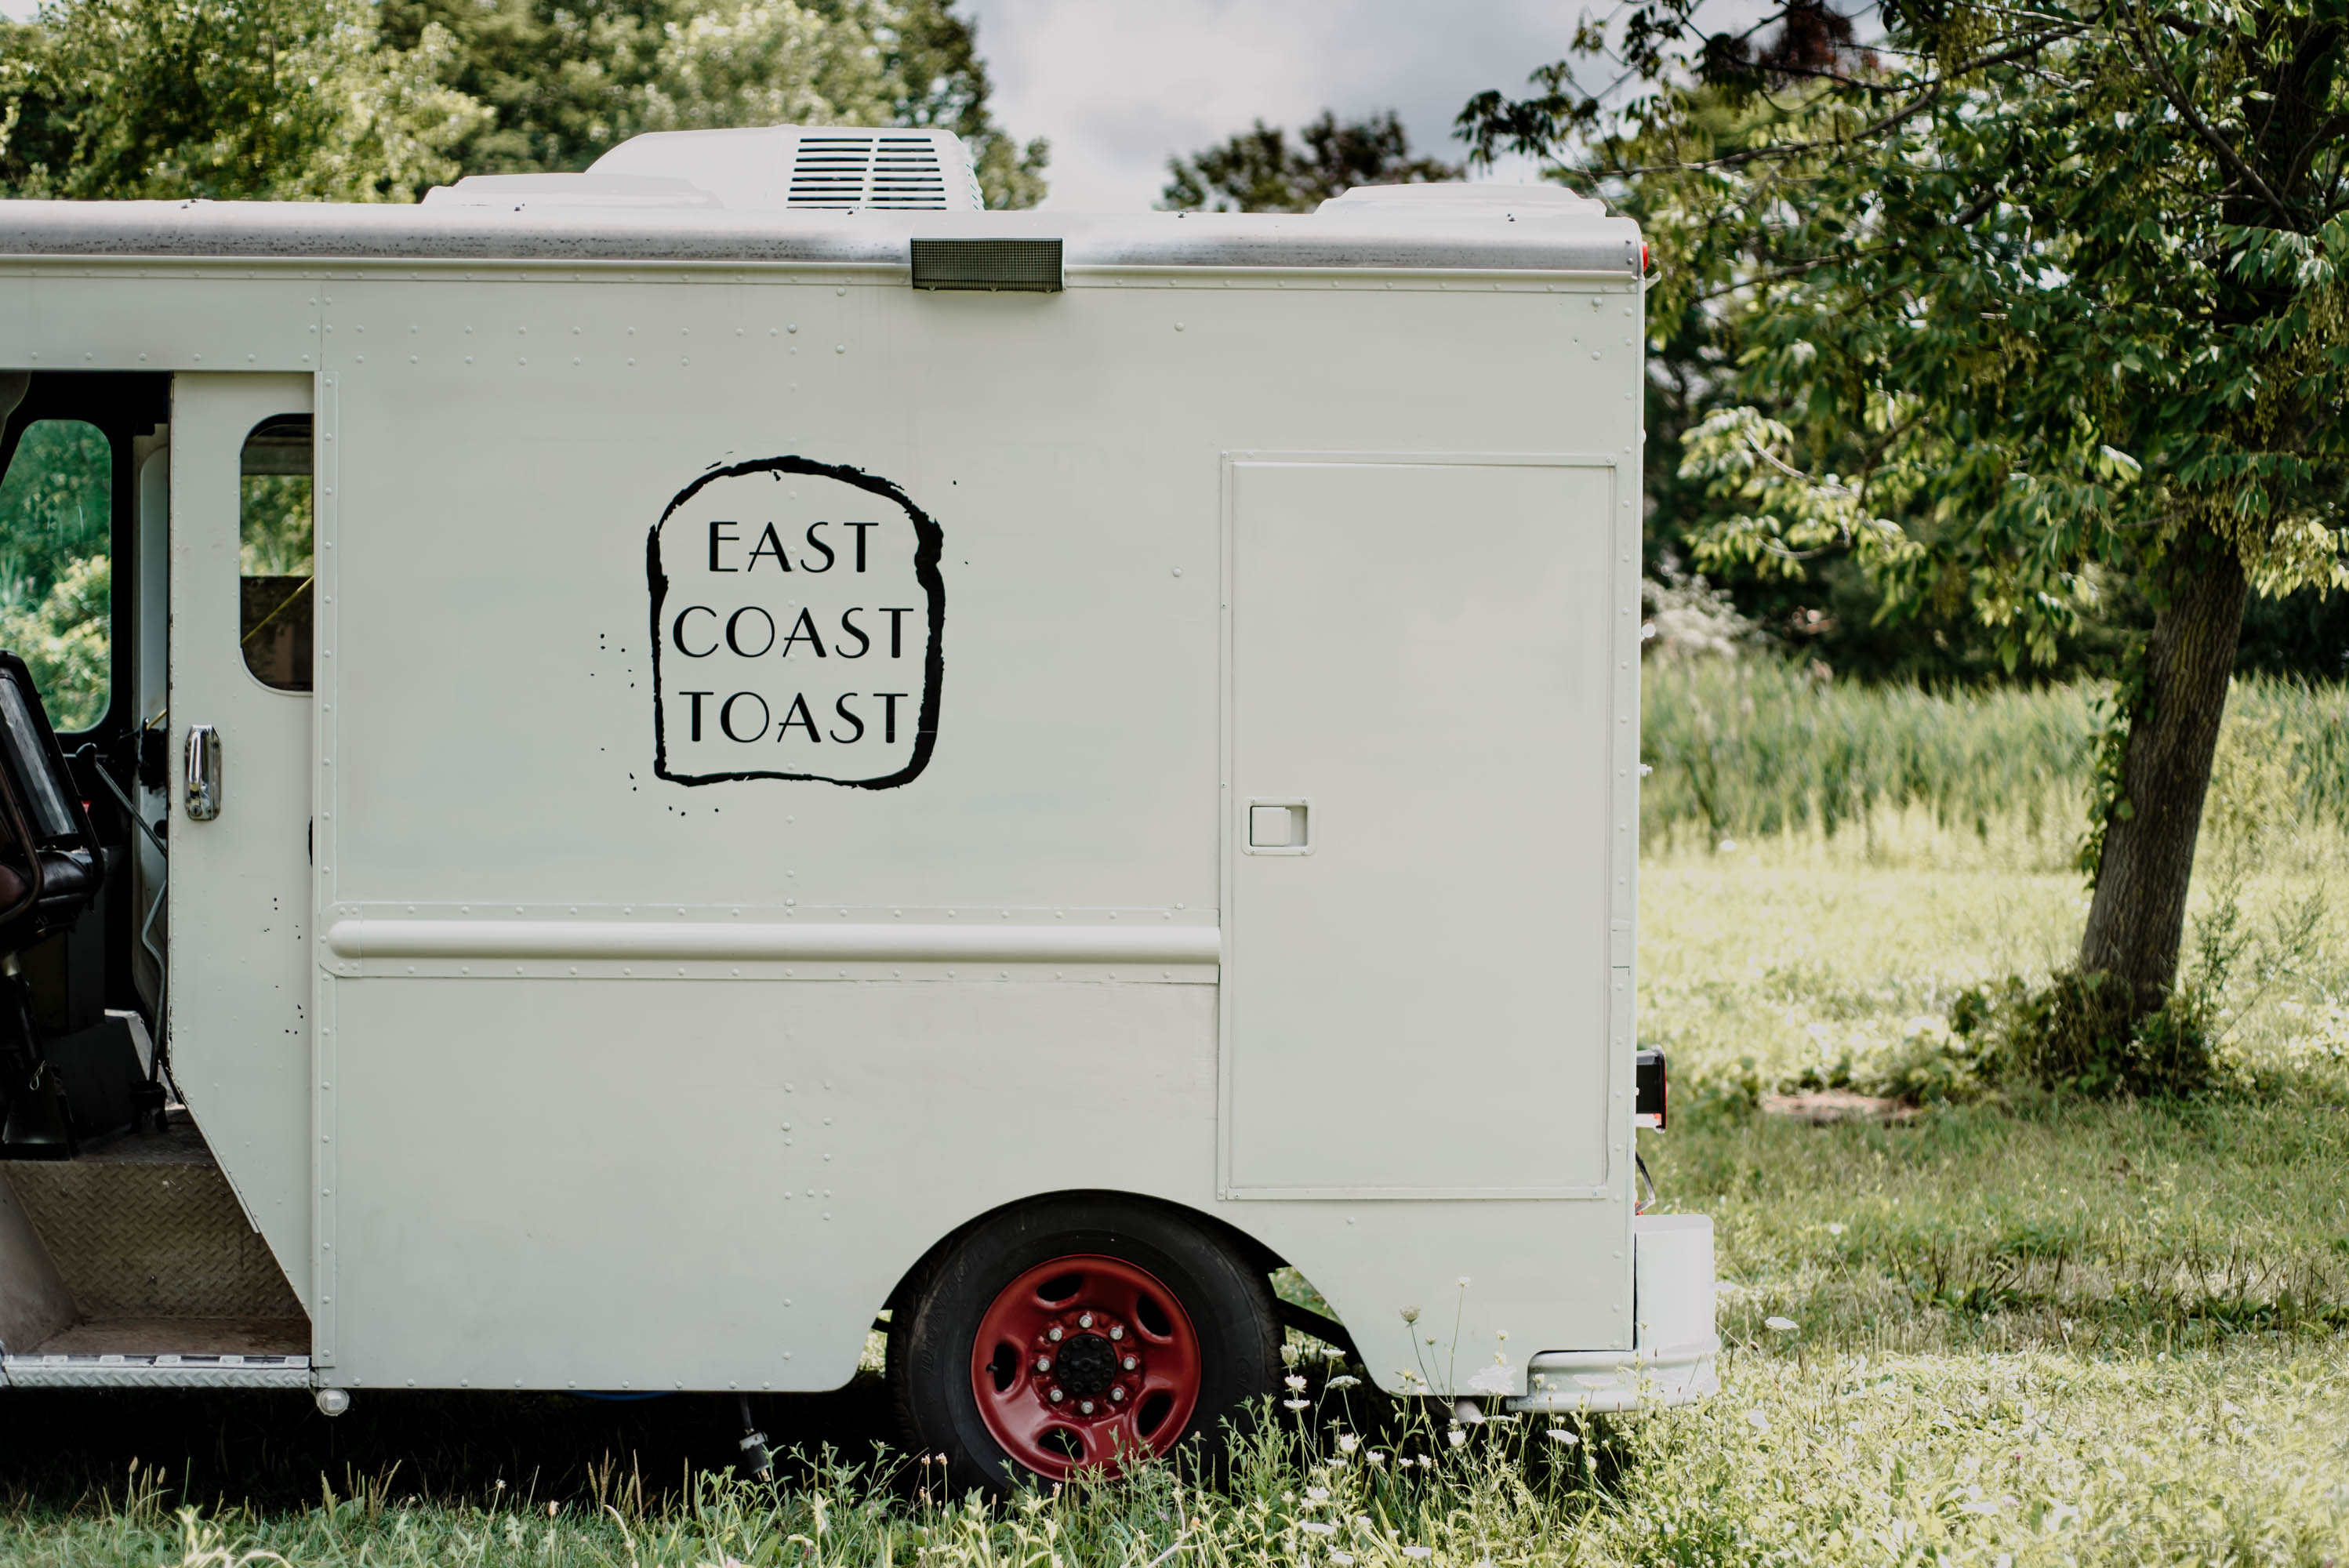 East Coast Toast Truck: It's a Crumby Business – Rochester Brainery